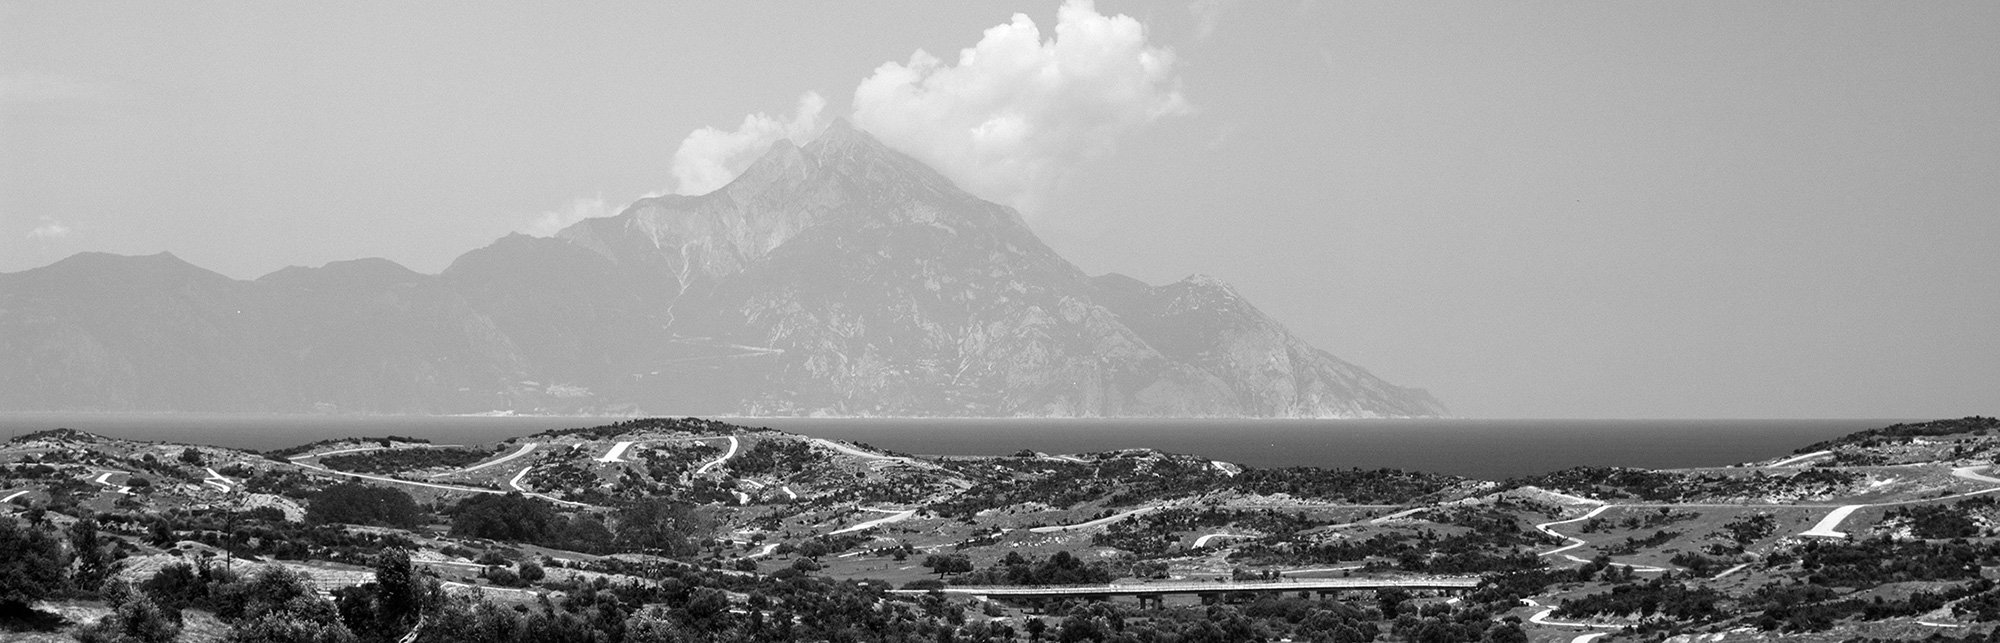 Roads and Ways 9 - Sithonia, Greece